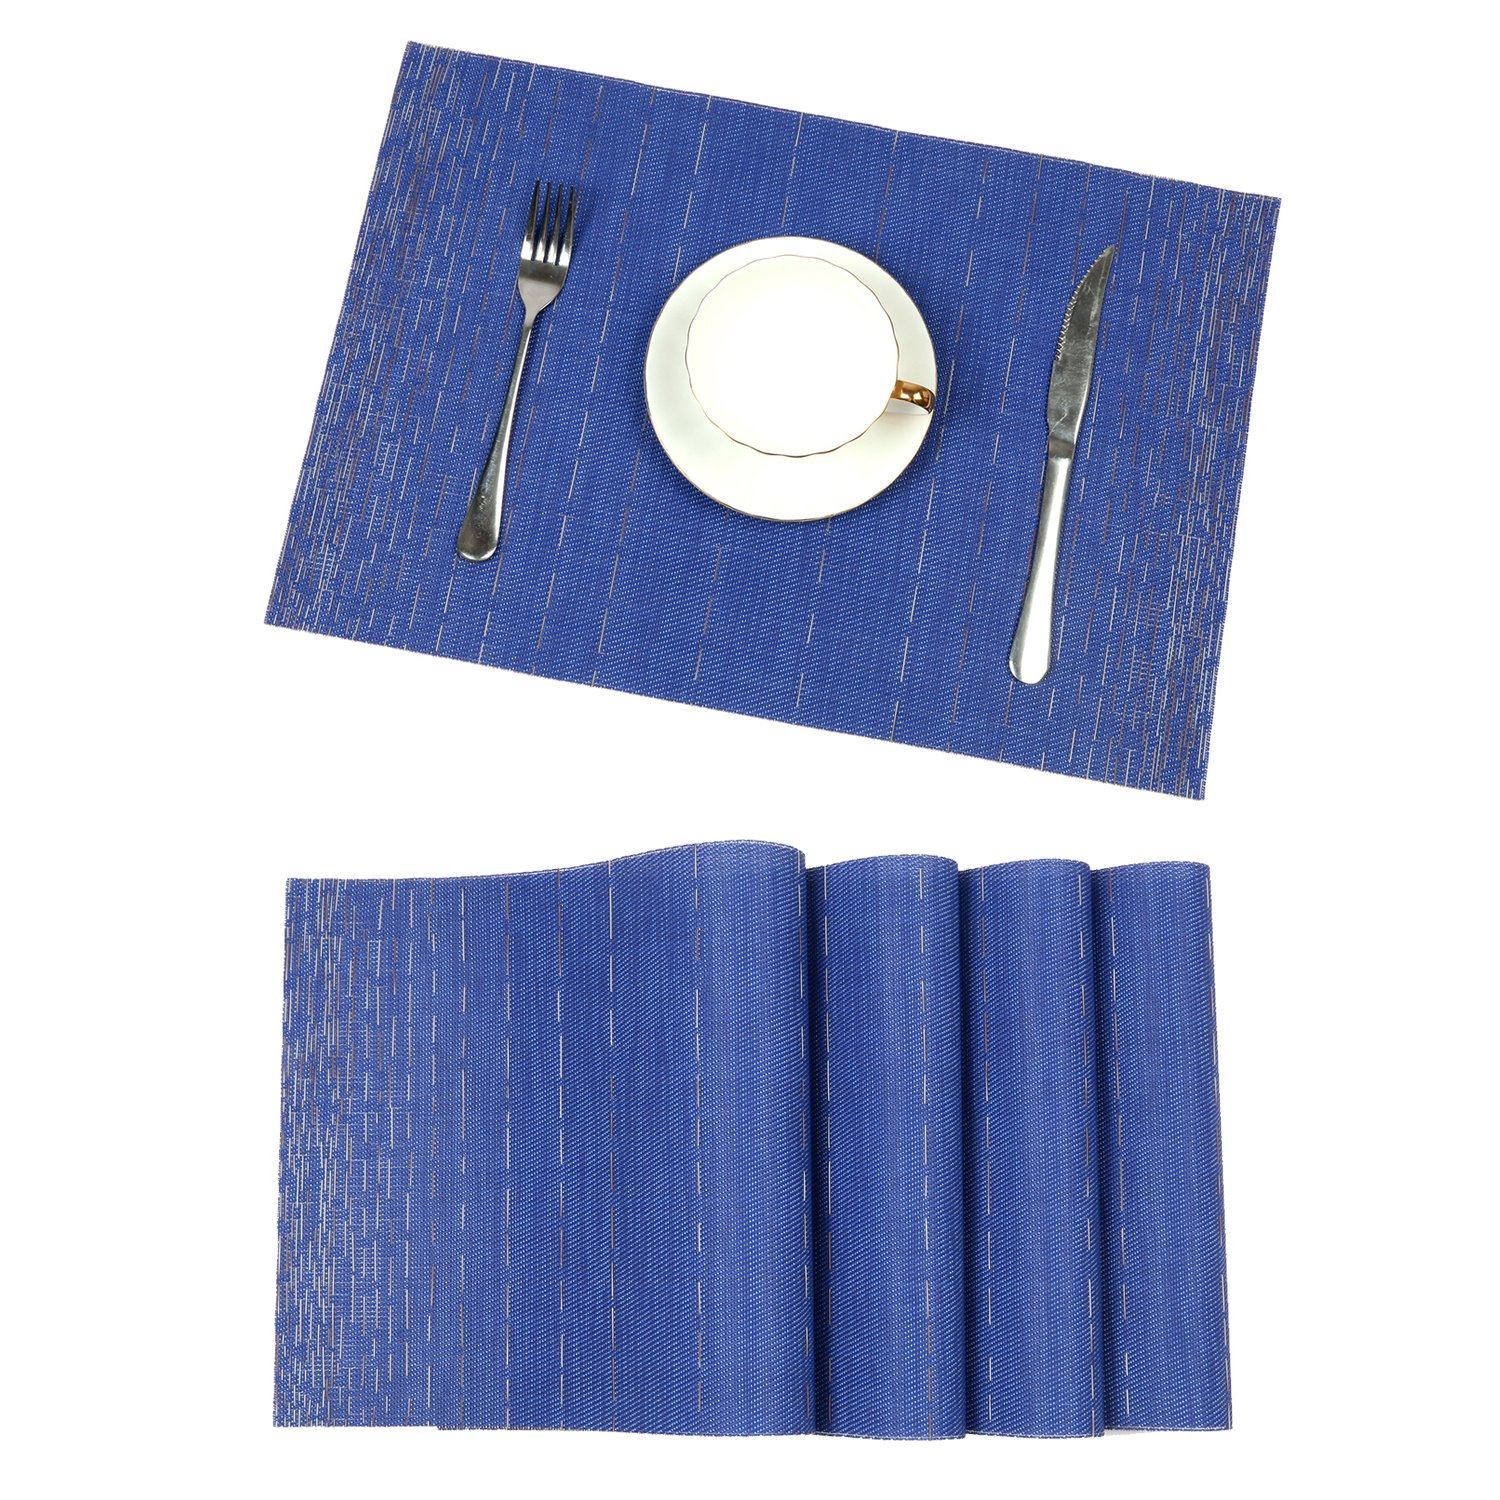 Pauwer Placemats for Dining Table Heat resistant Stain Resistant Washable PVC Placemats Set of 8 Kitchen Table Place Mats Woven Vinyl Placemats (Blue, Set of 8)